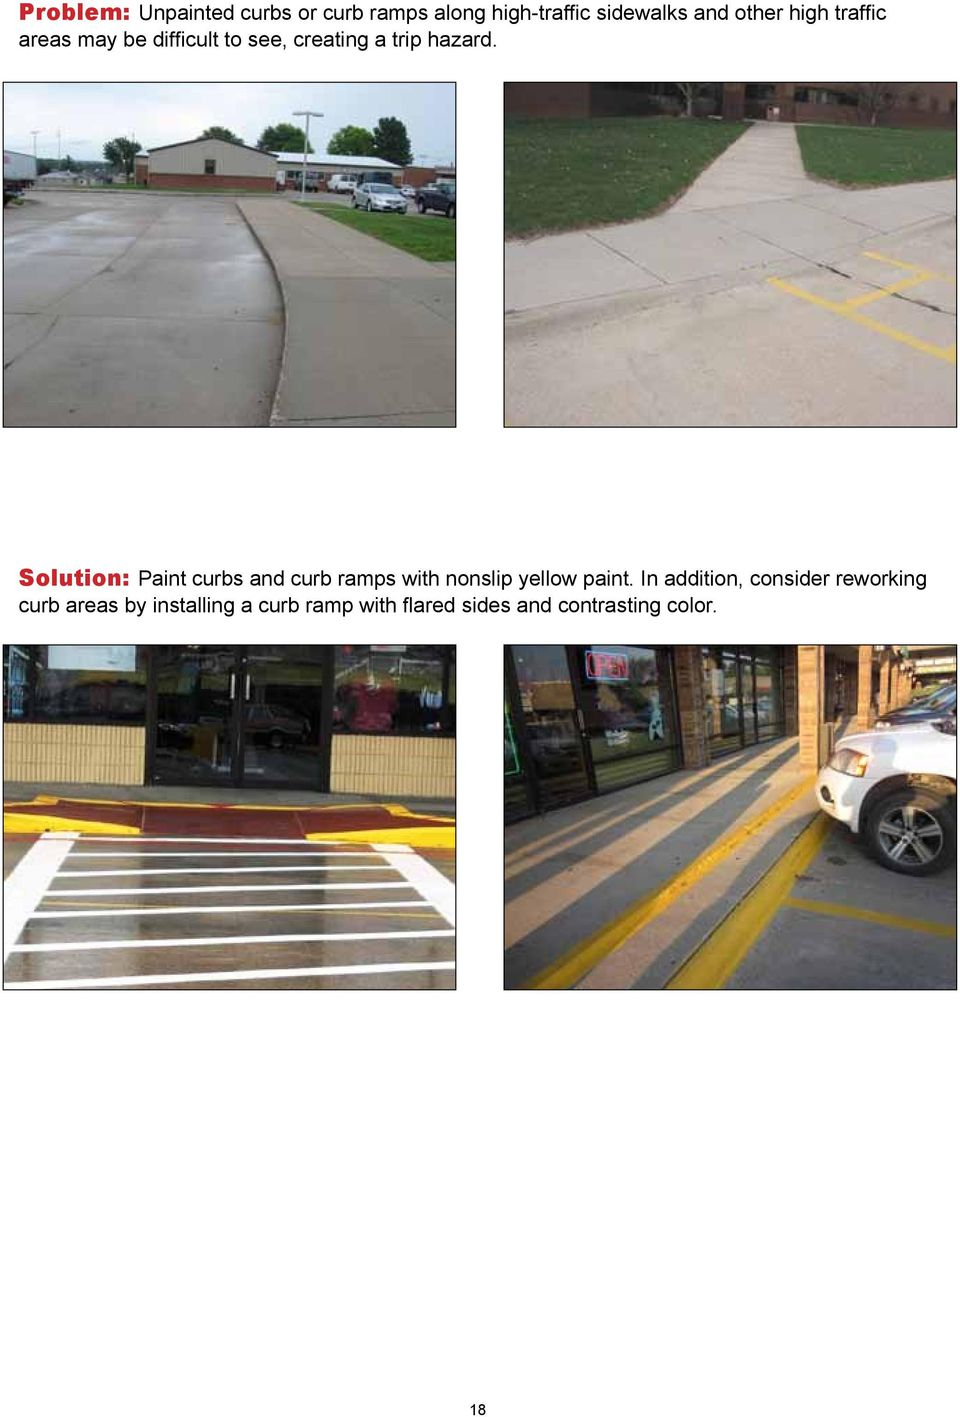 Solution: Paint curbs and curb ramps with nonslip yellow paint.